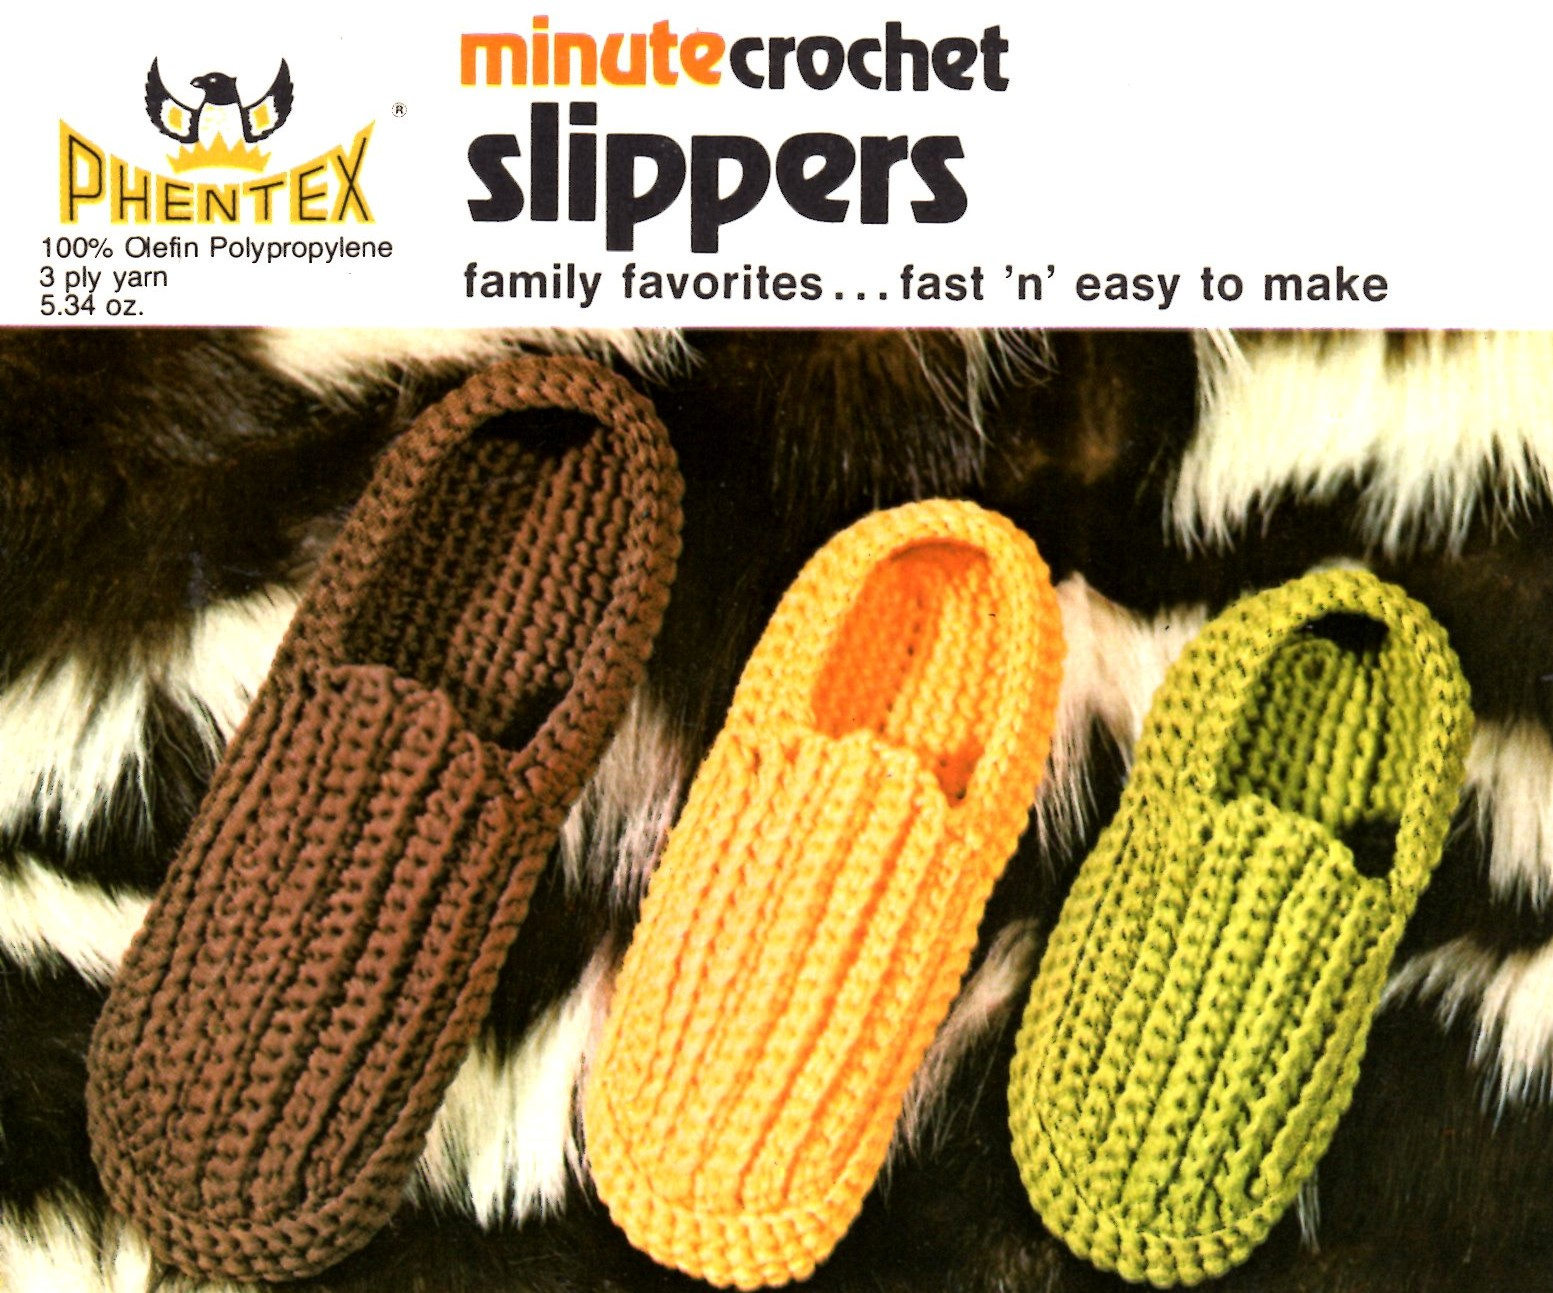 Minute Crochet Slippers For The Whole Family Fast And Easy To Make Vintage Crafts And More